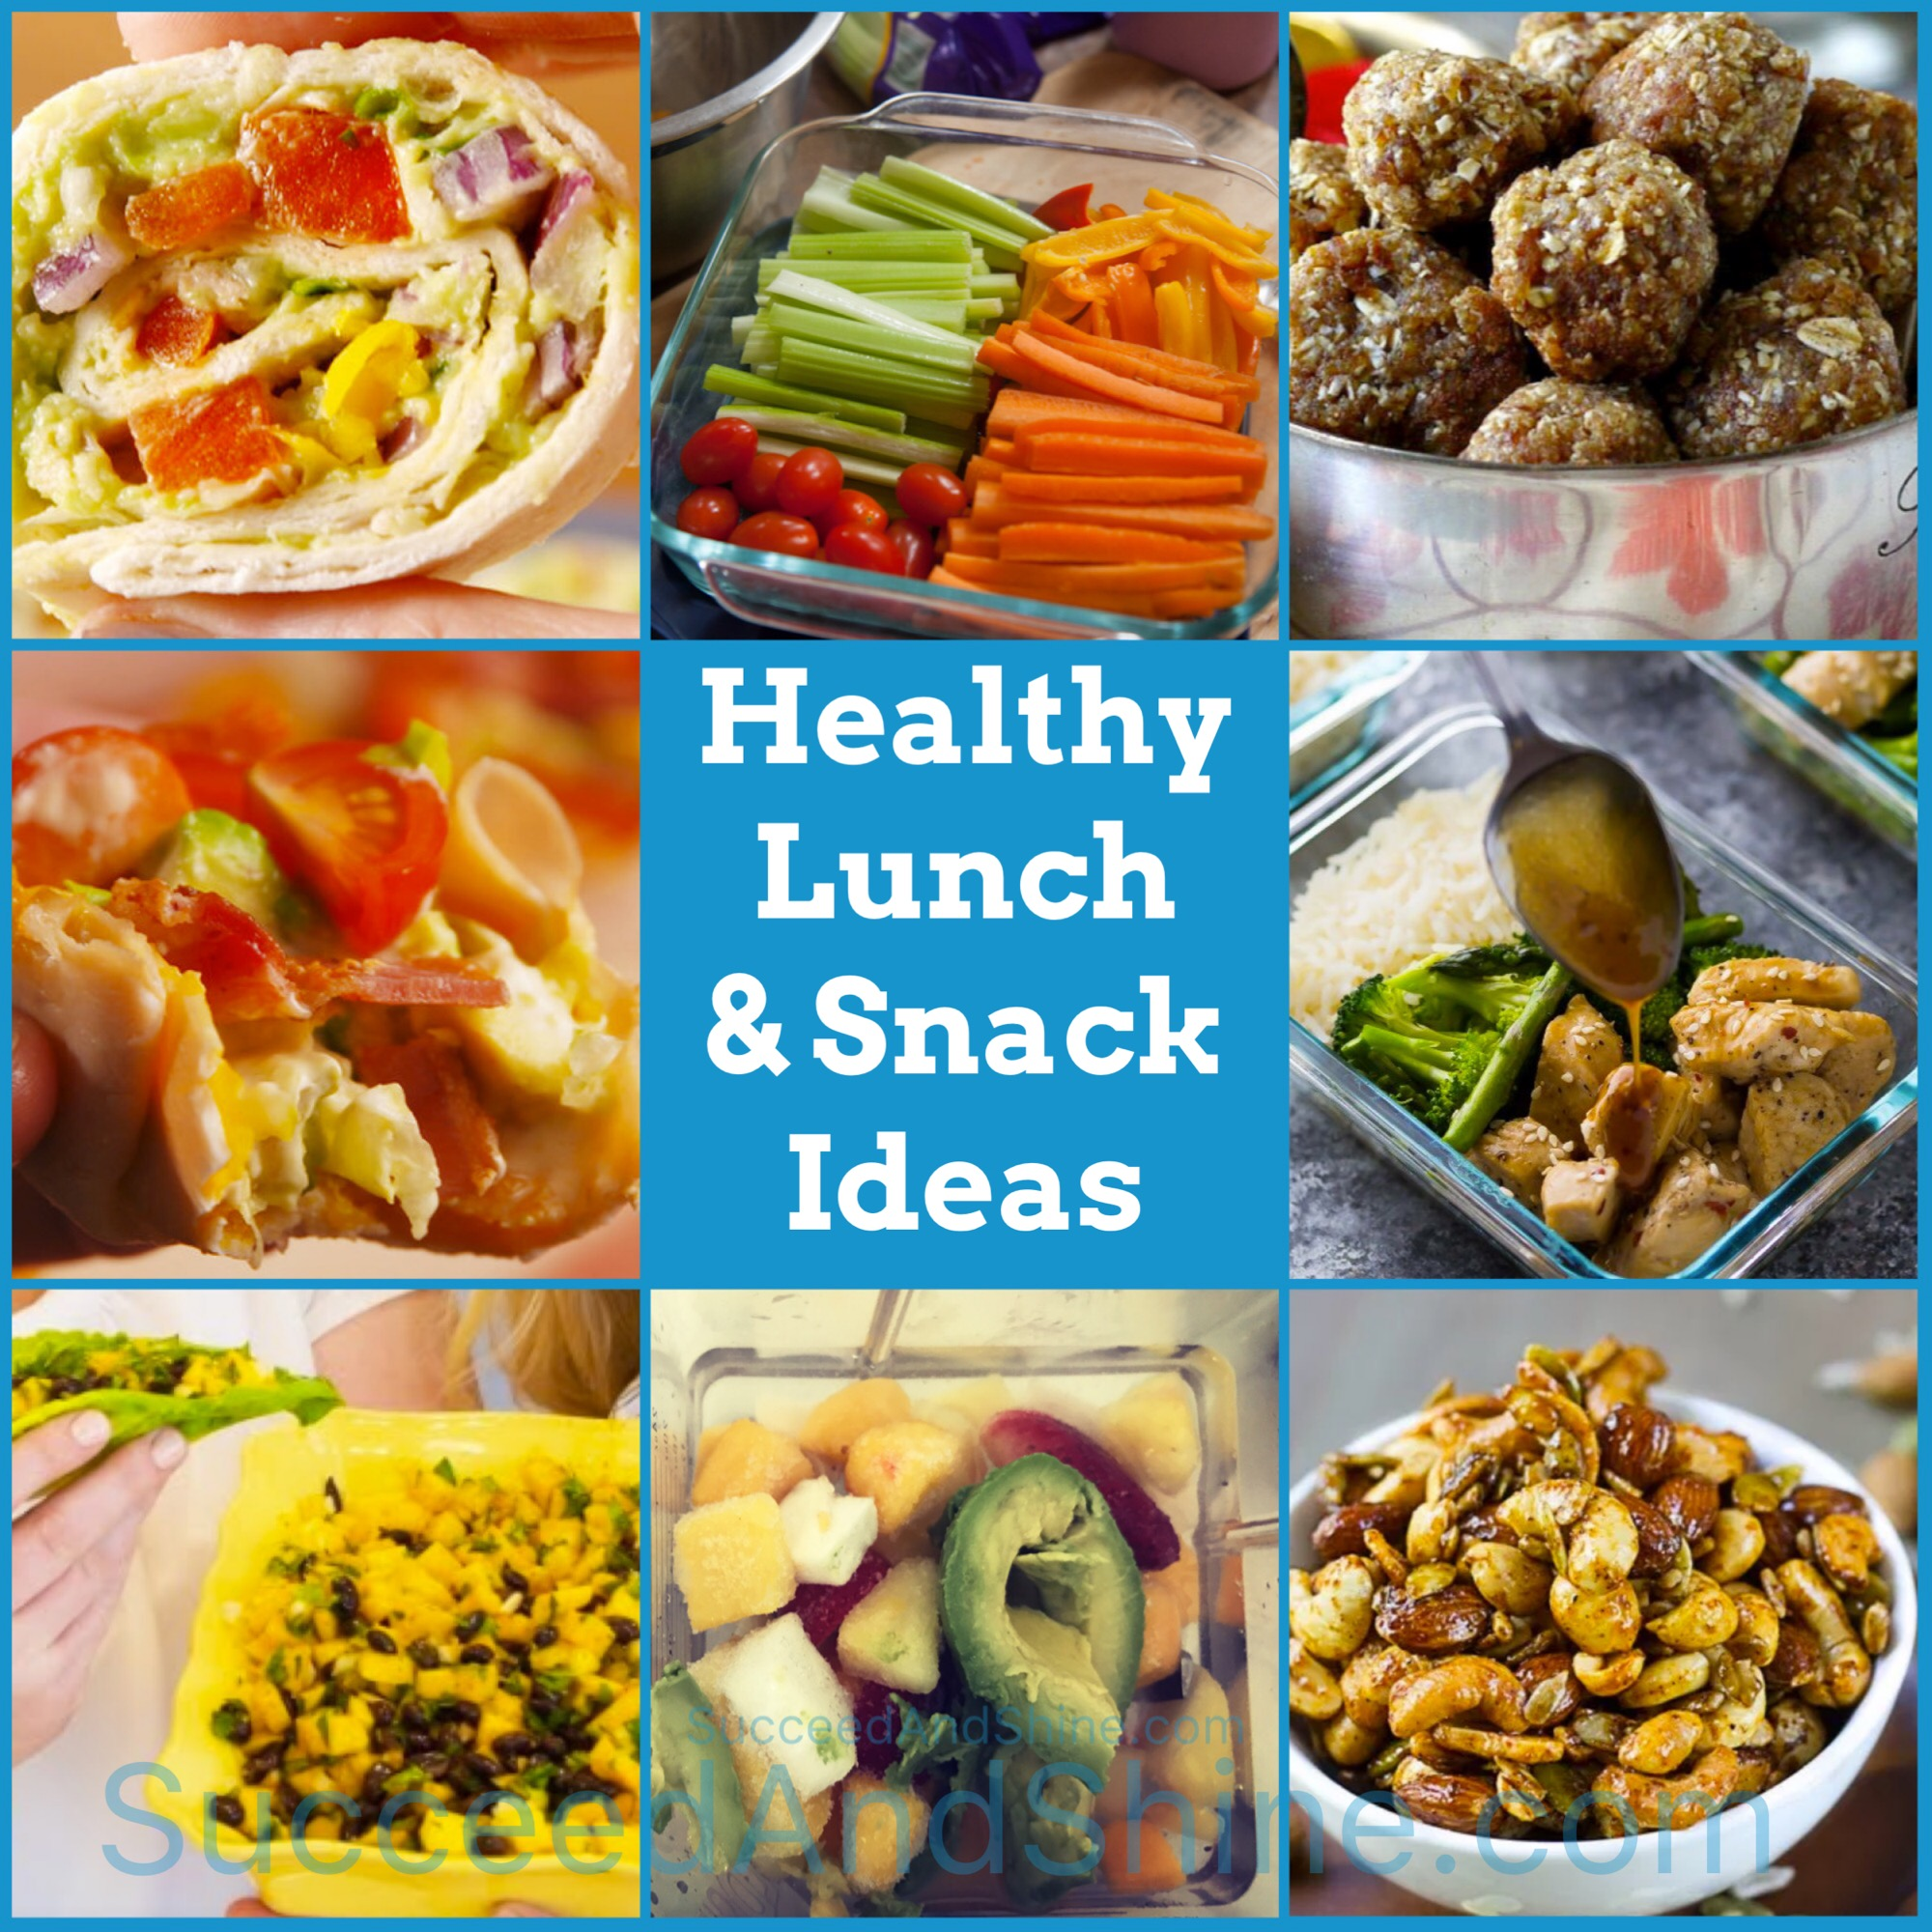 Healthy Lunch And Snack Ideas For People Working From Home